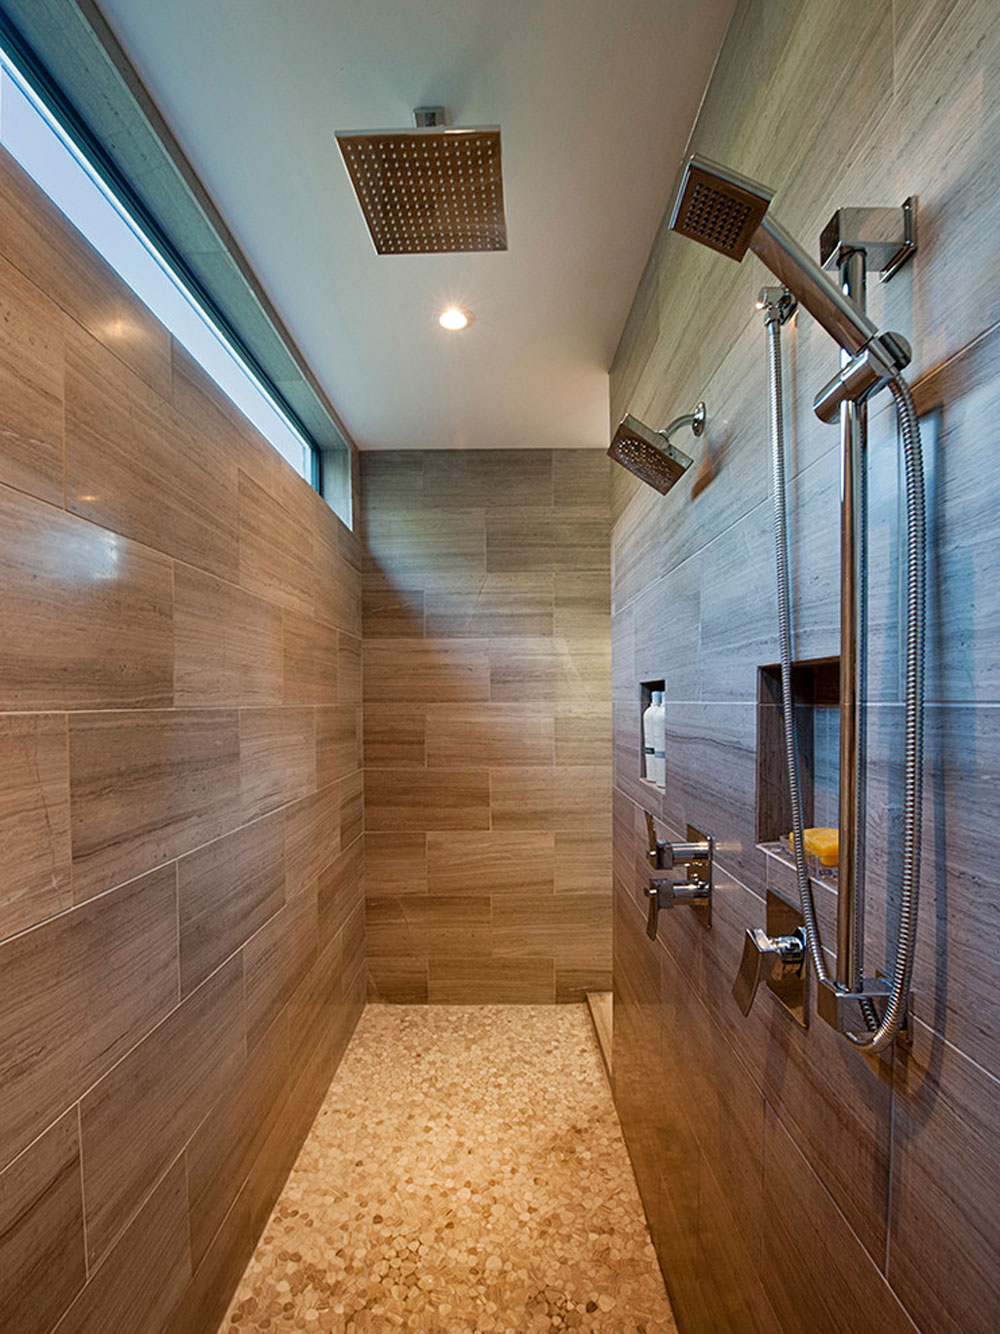 The-Bradner-Residence-by-Rockridge-Fine-Homes Niche Shower Ideas and Best Practices for Your Bathroom